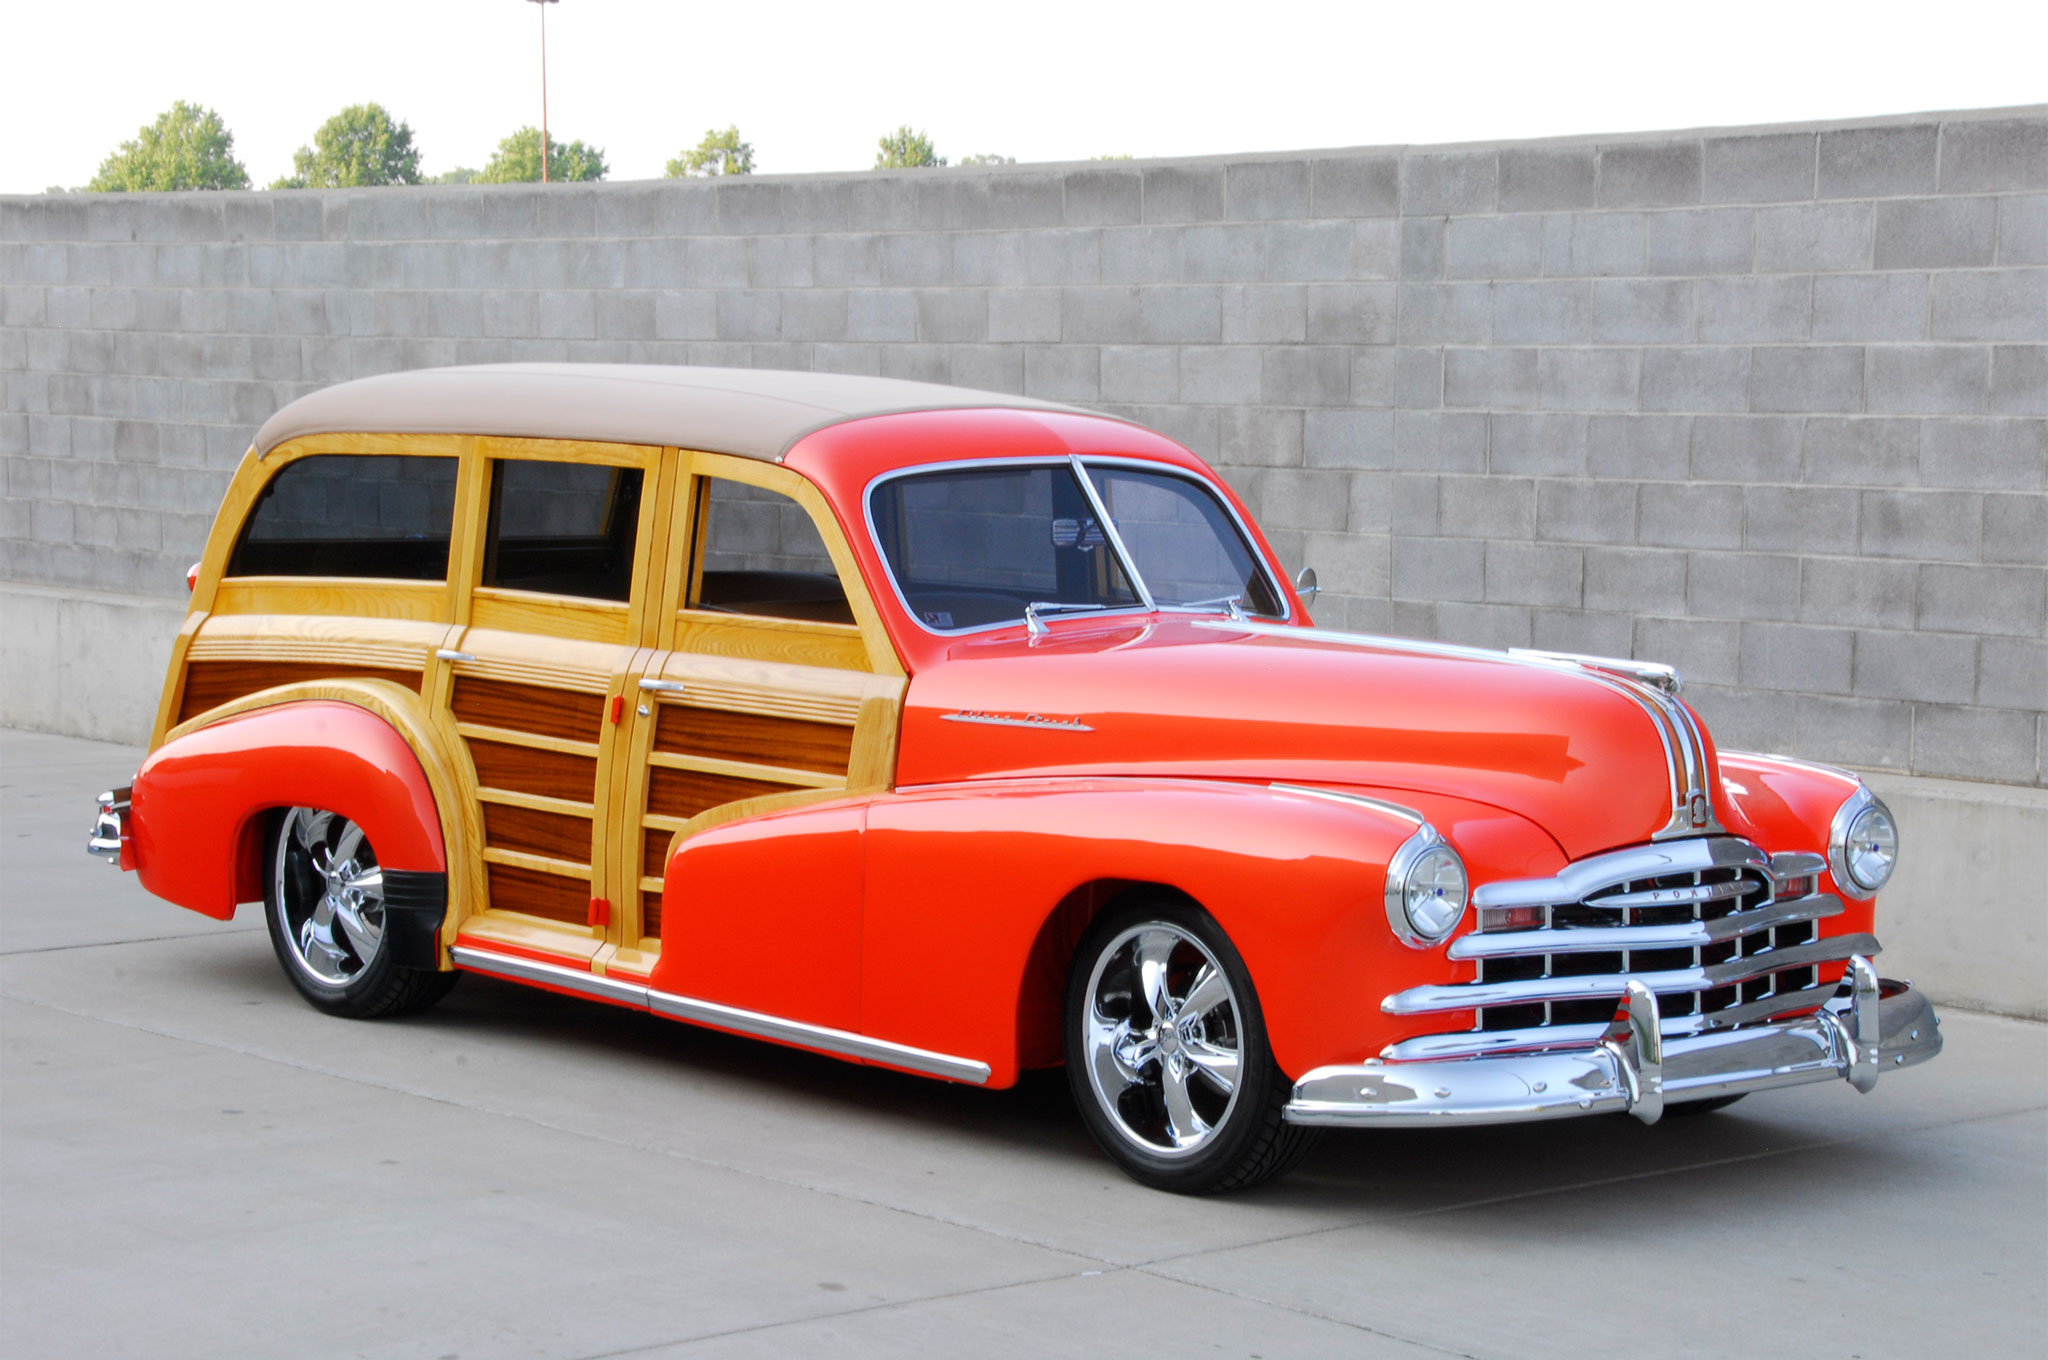 Big, bold, and coated in gallons of House of Kolor Mango Coral pearl, the wagon gives off a dramatic decadence rarely seen in smaller hot rods. Accented by miles of wood and chrome, it's easy to appreciate all of the intricate attention to detail.